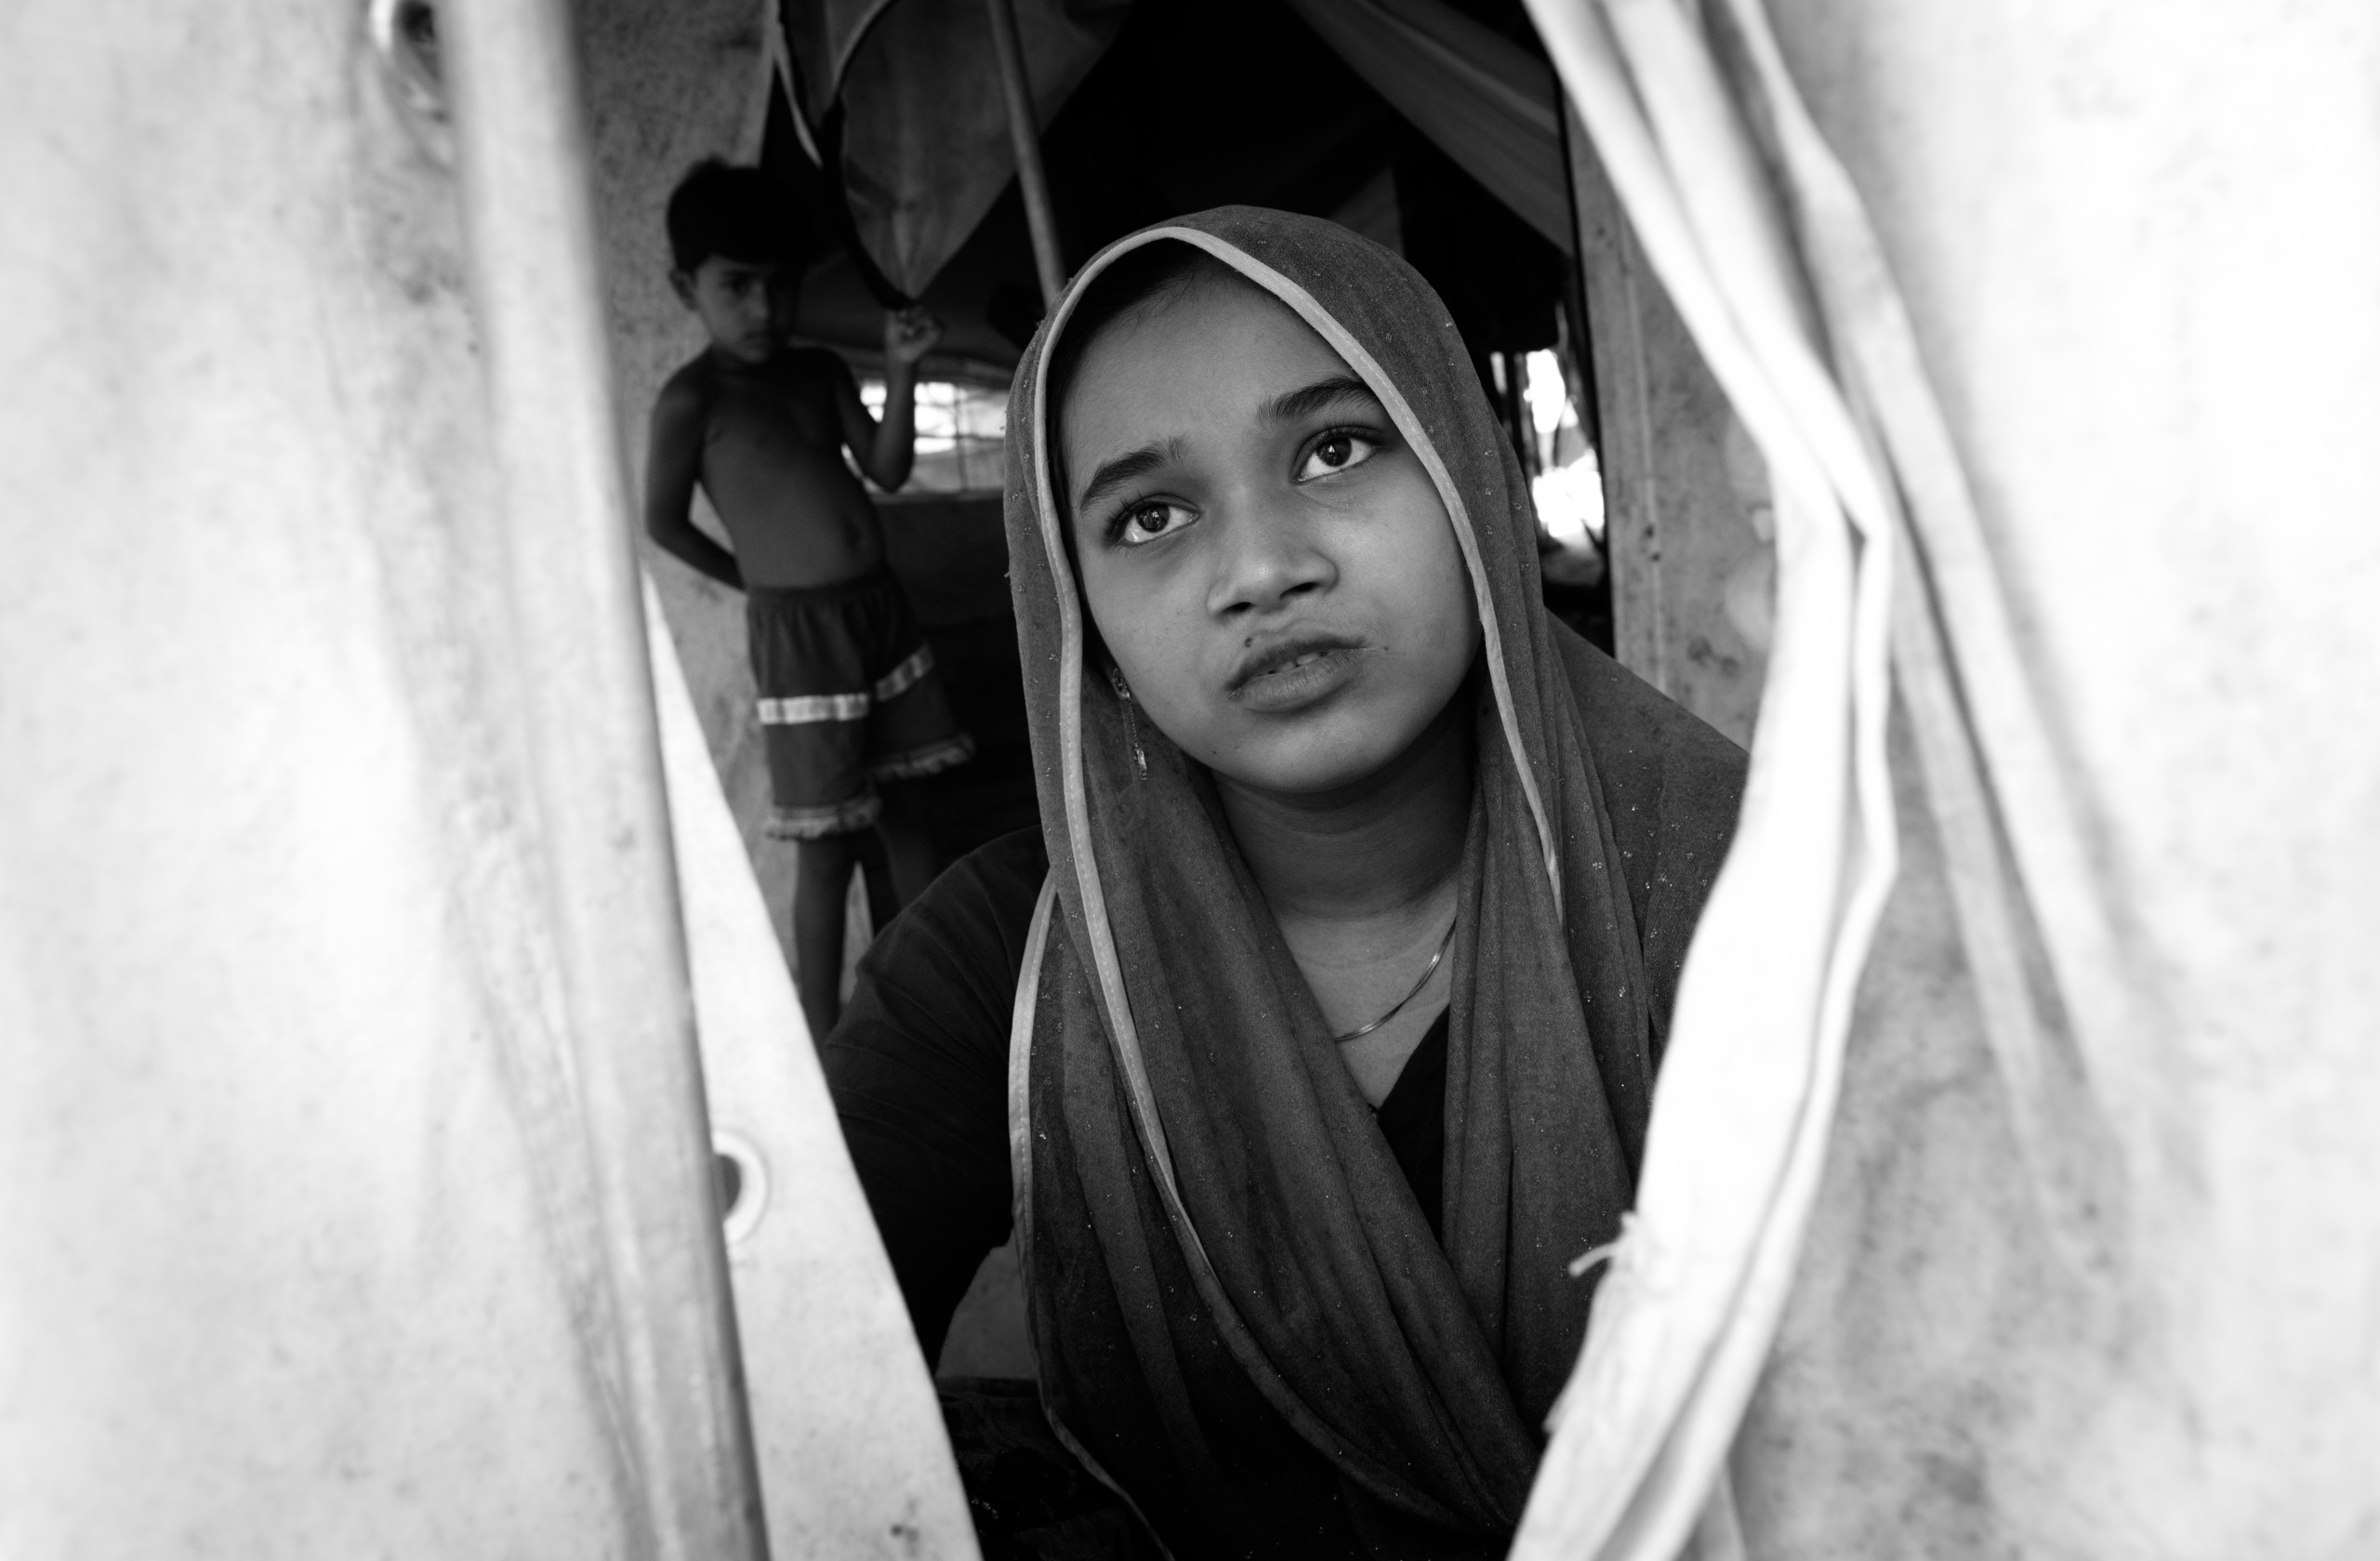 Rohingya refugee at the Kutupalong transit center . Over 650,000 Rohingya have crossed the border to Bangladesh since August last year, fleeing the violence.